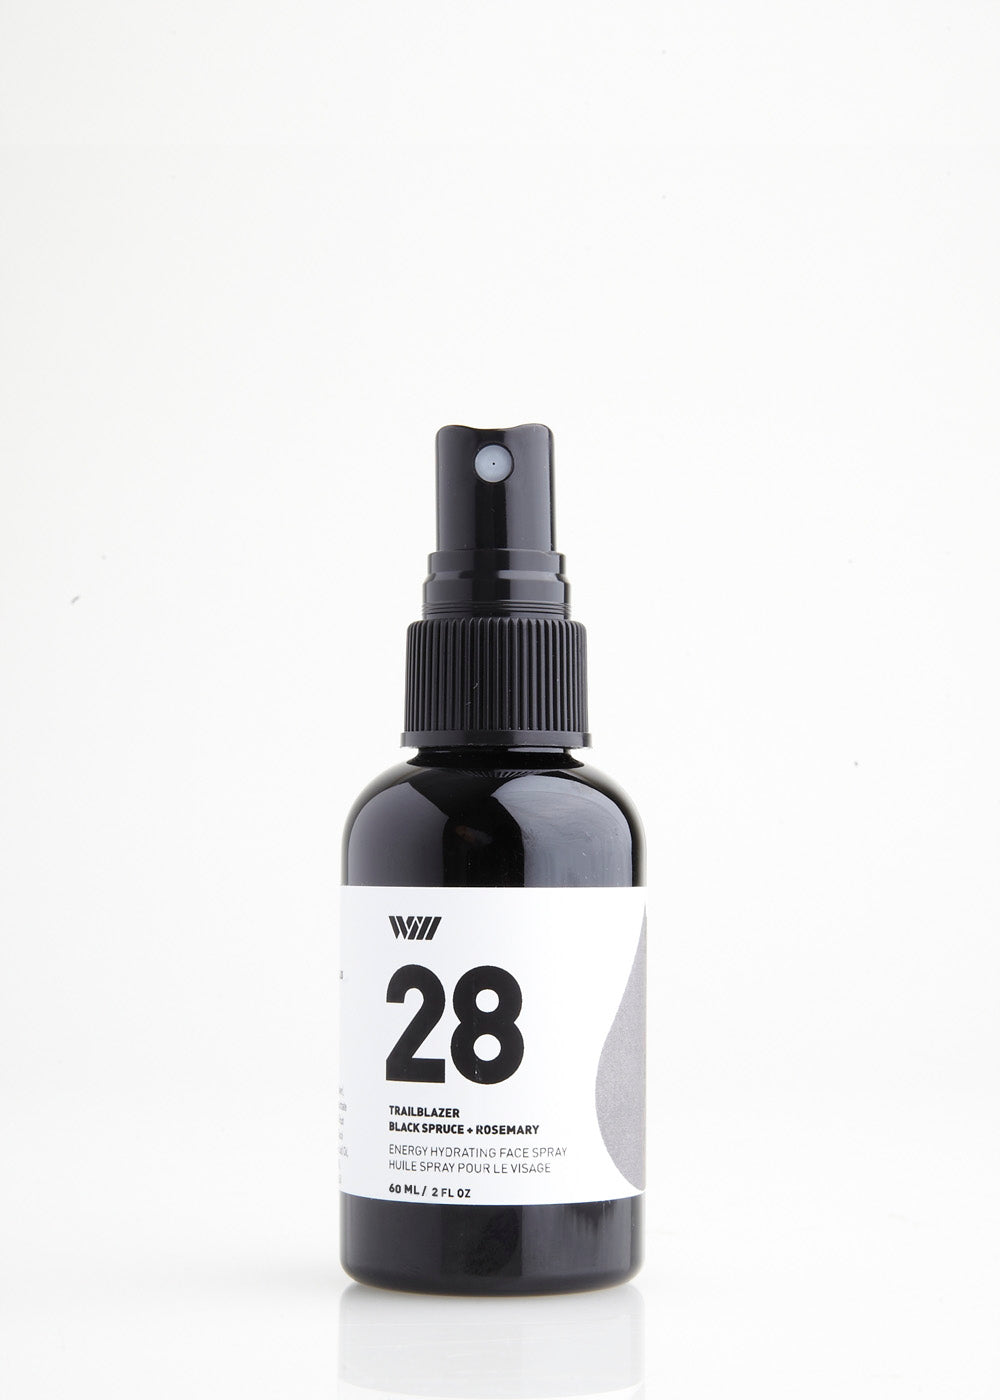 28 Trailblazer | Energizing Facial Spray | Black Spruce + Rosemary